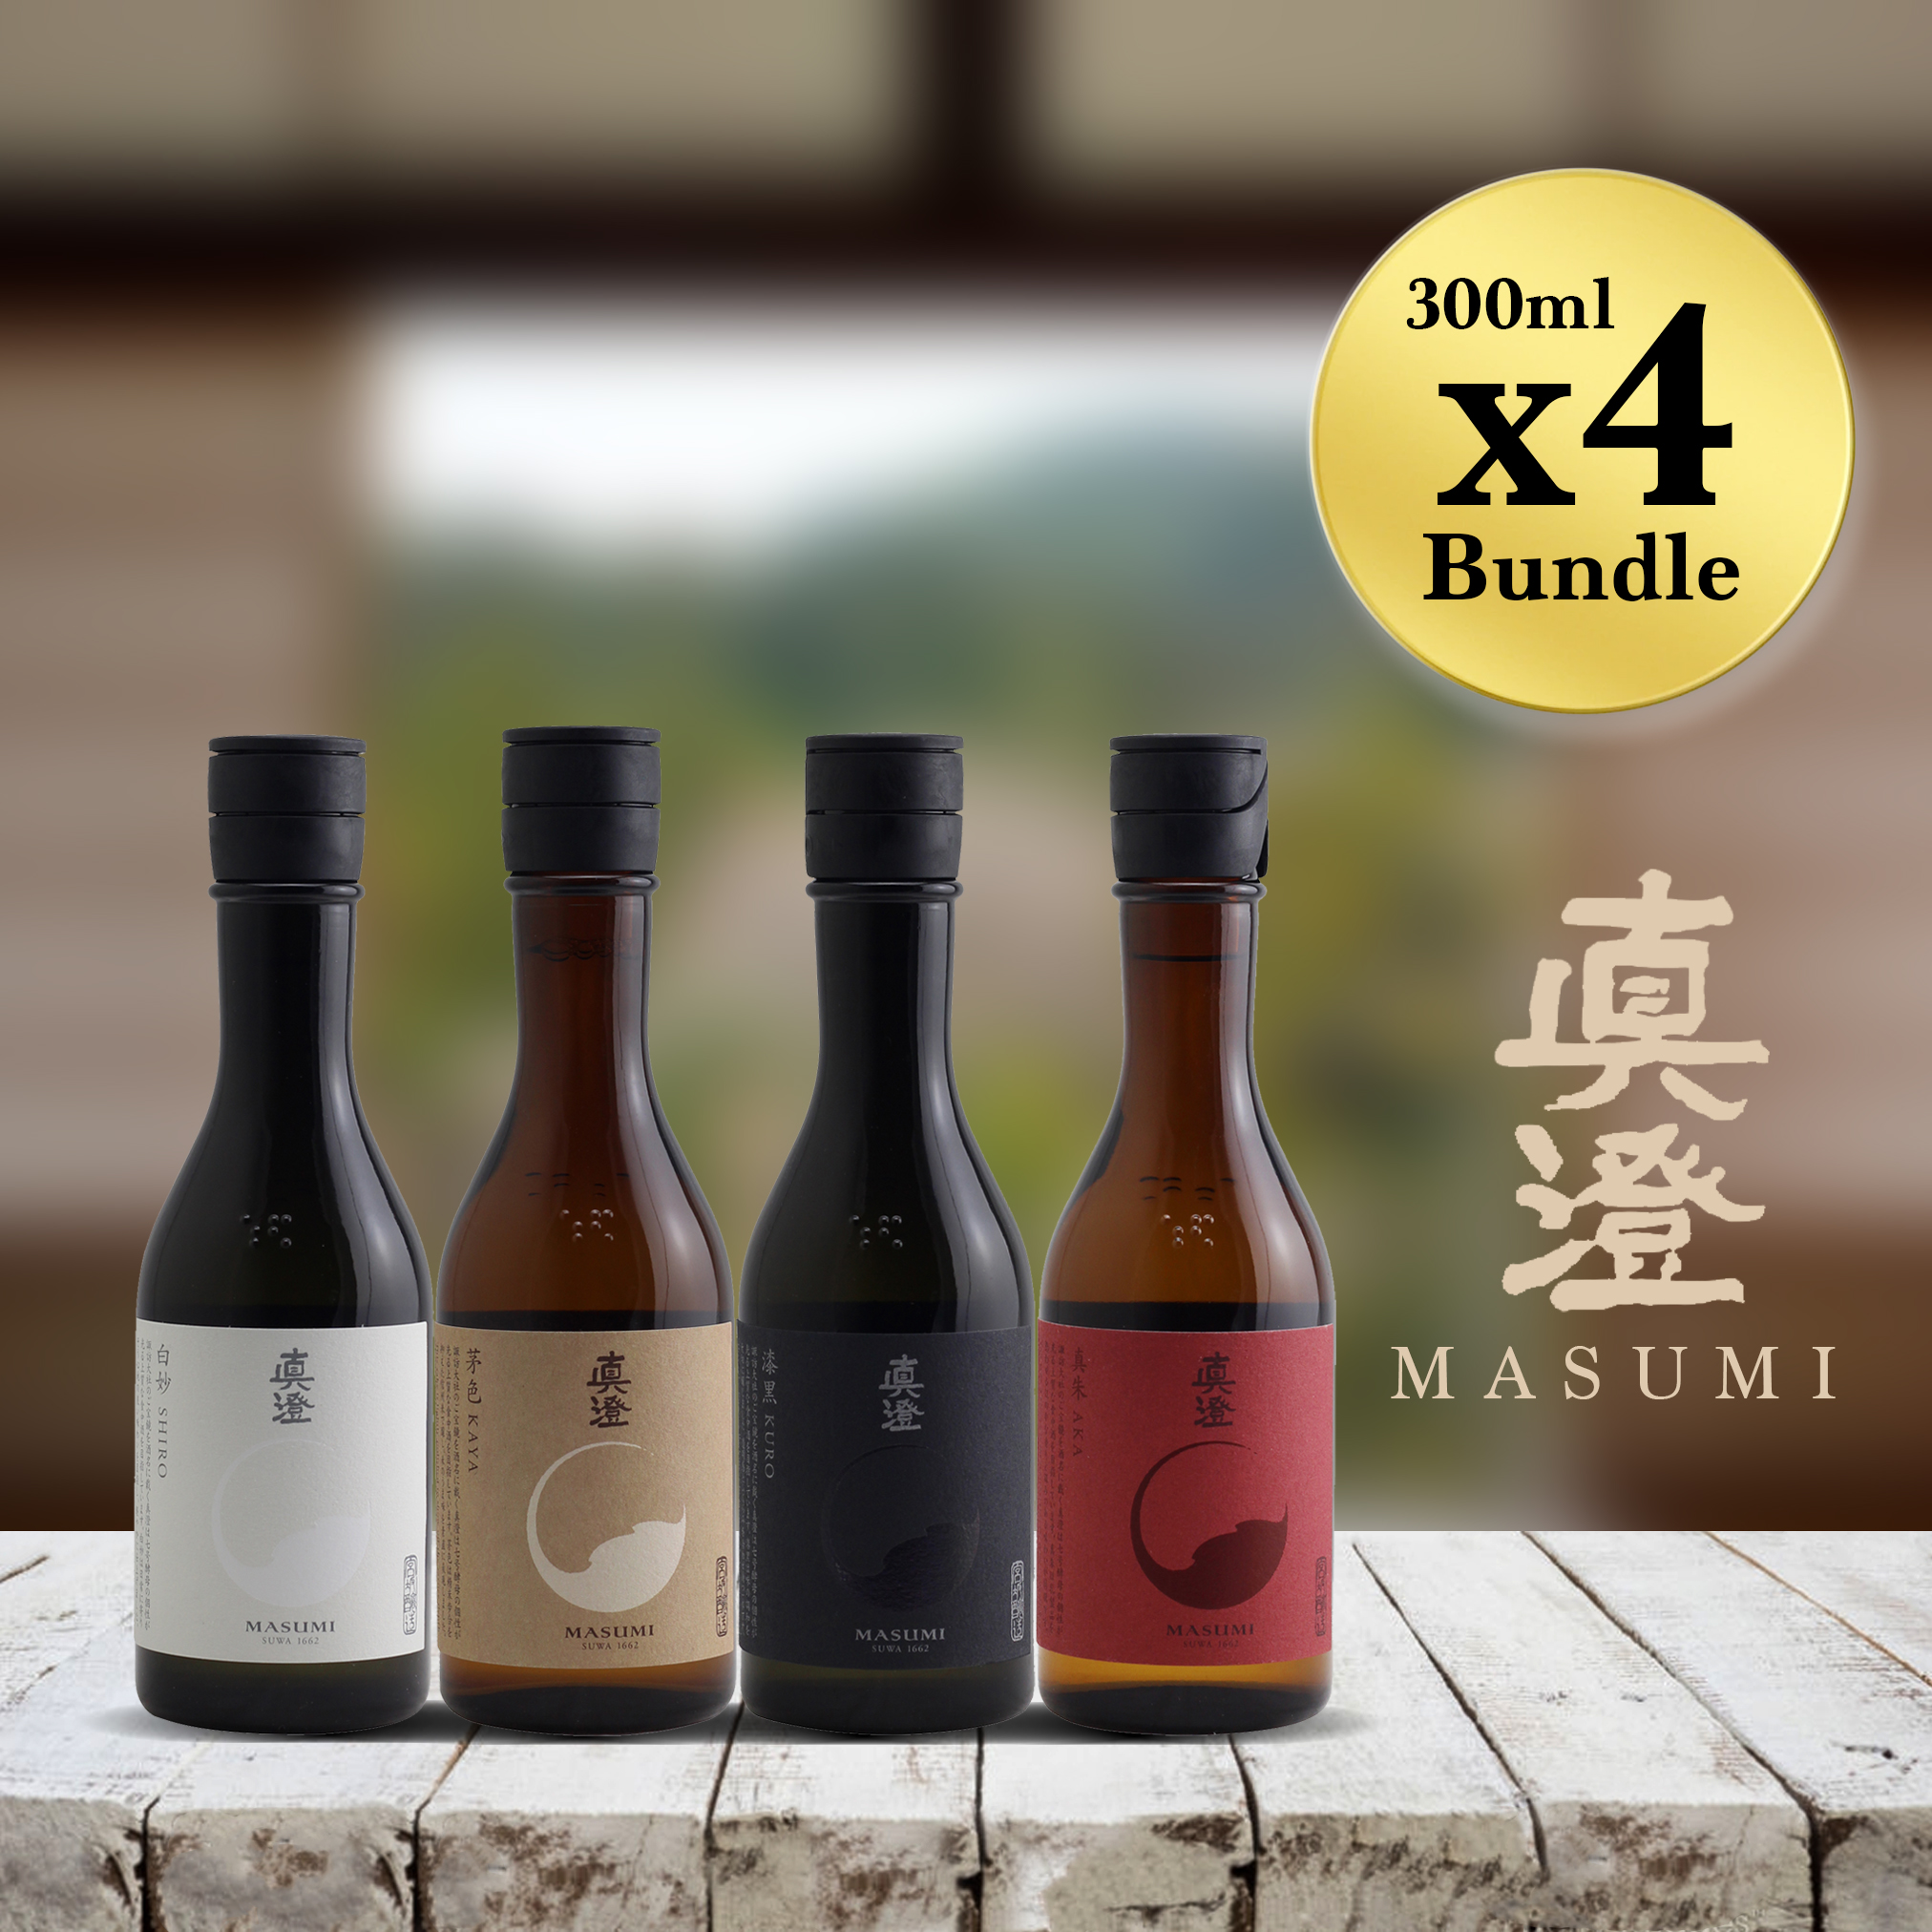 Masumi Sake - New Four Color  Flagship Bundle 300ml X4